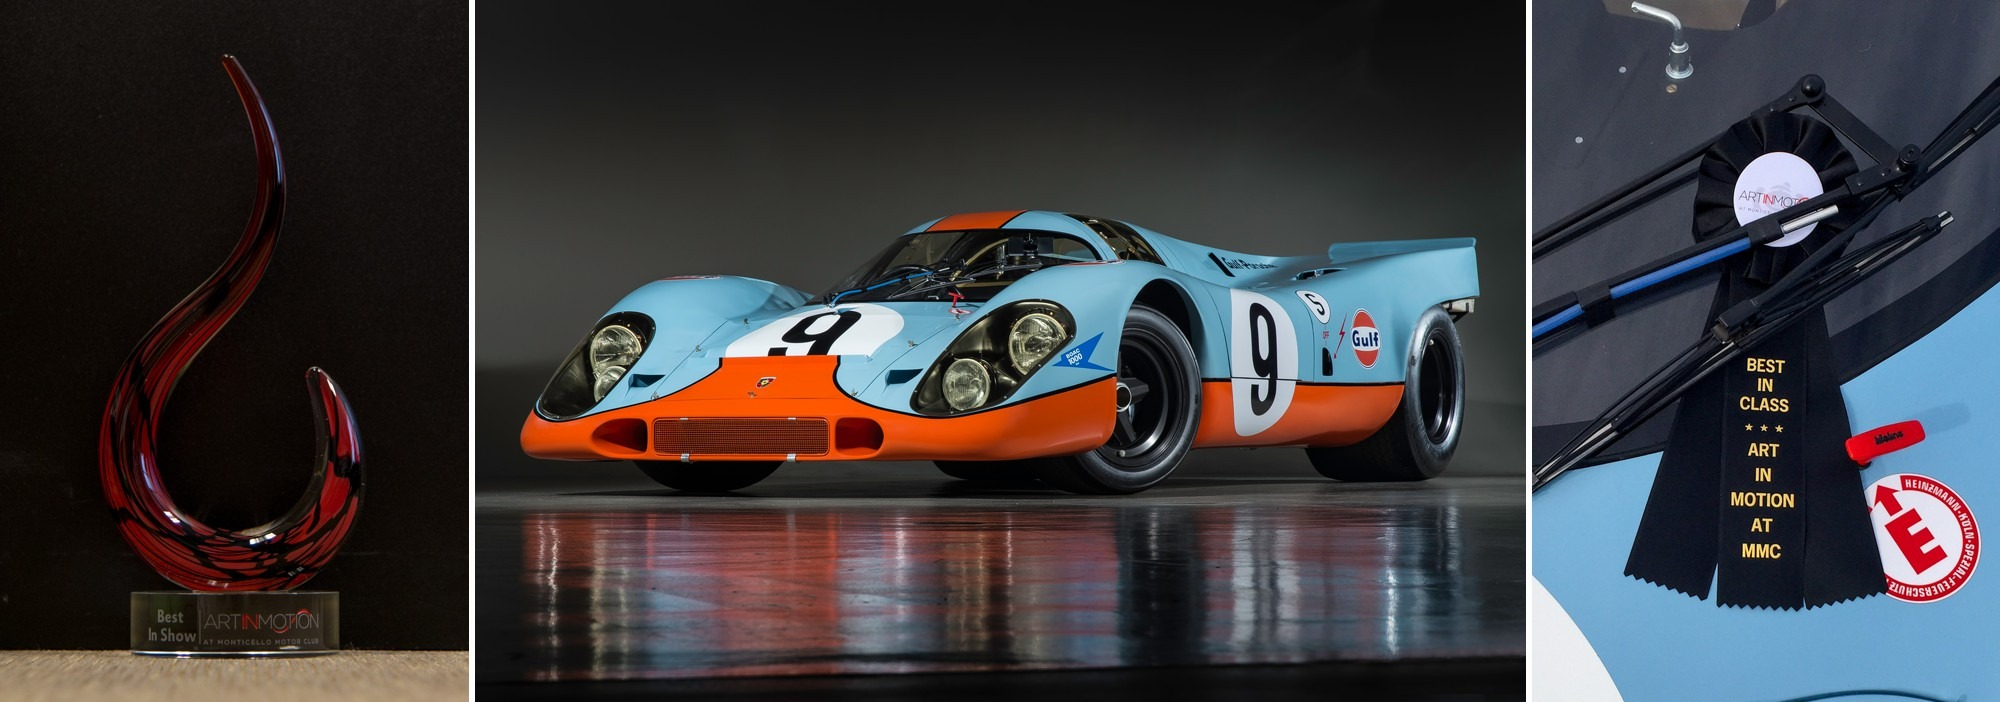 Porsche 917K AIM Awards